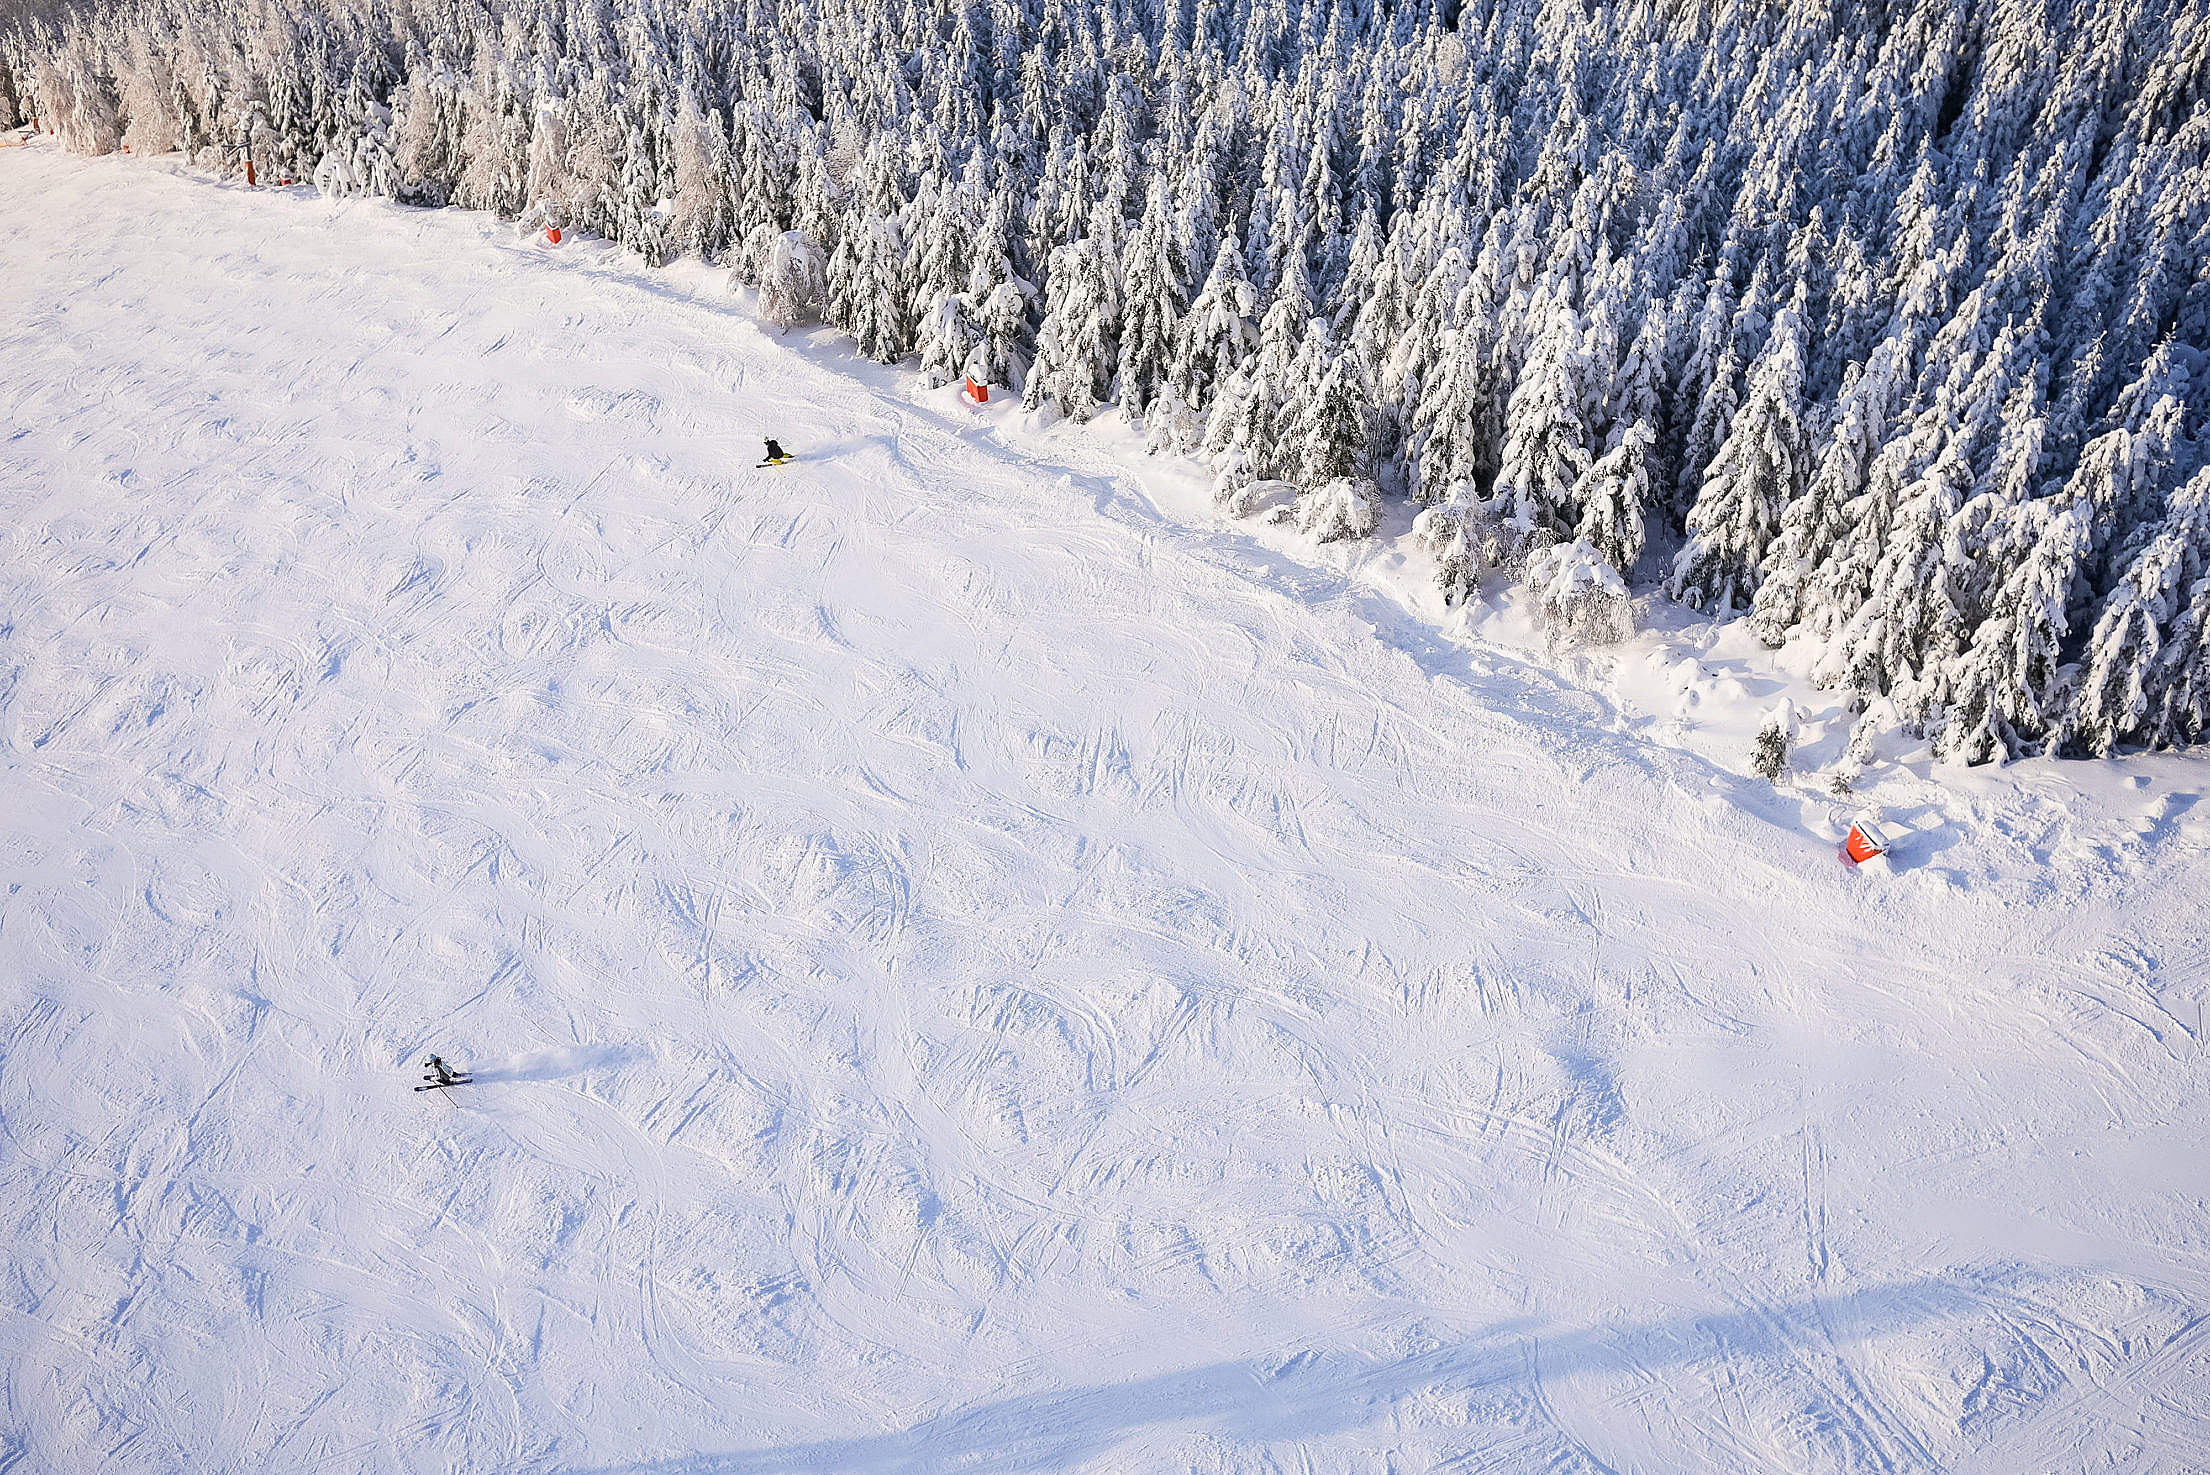 Large Ski Slope with Skiers From Above Free Stock Photo